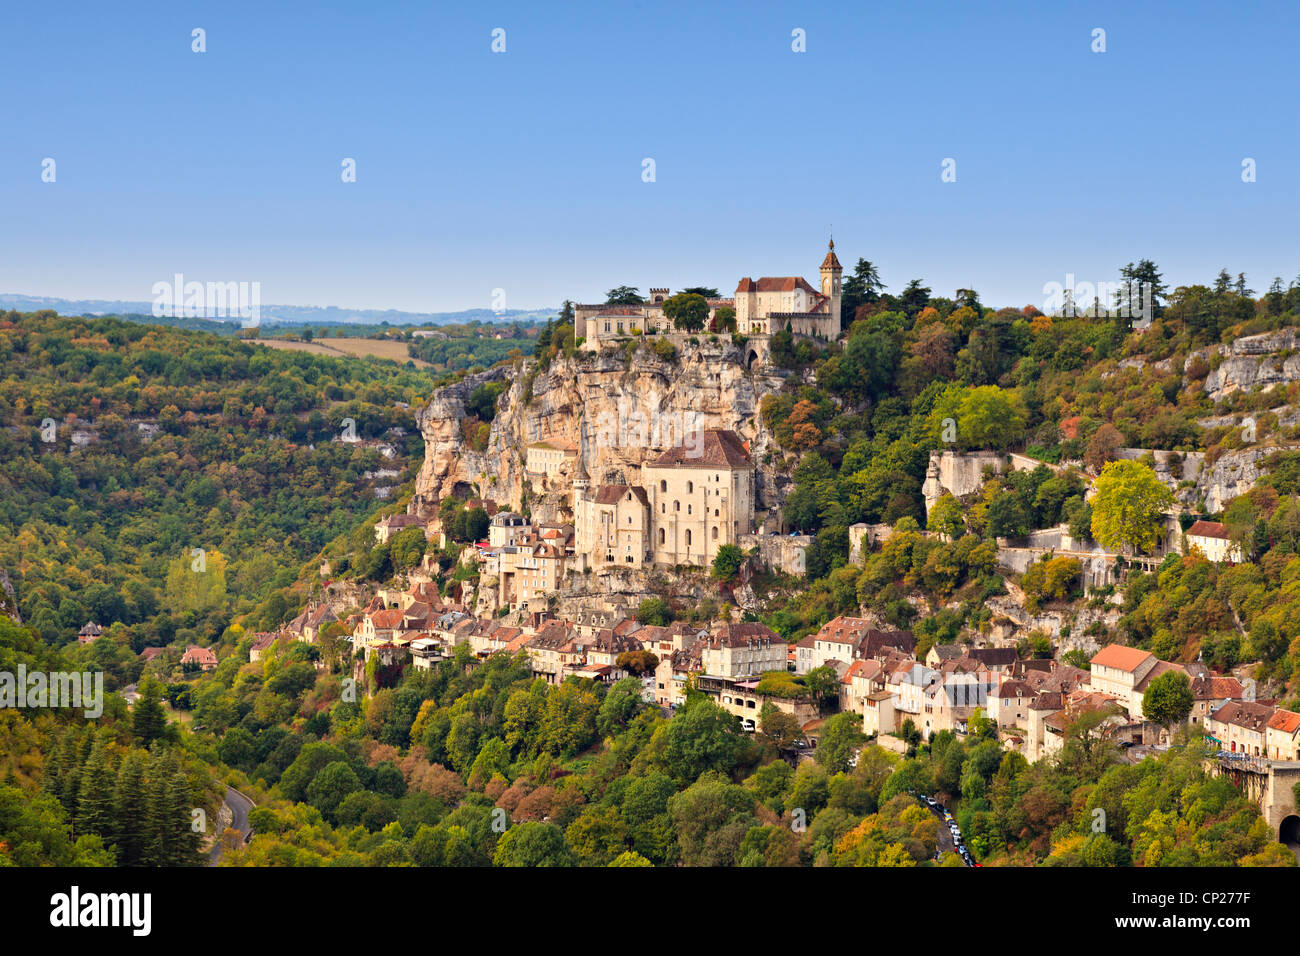 The medieval town of Rocamadour, in the Dordogne Valley, Midi-Pyrenees, France. - Stock Image